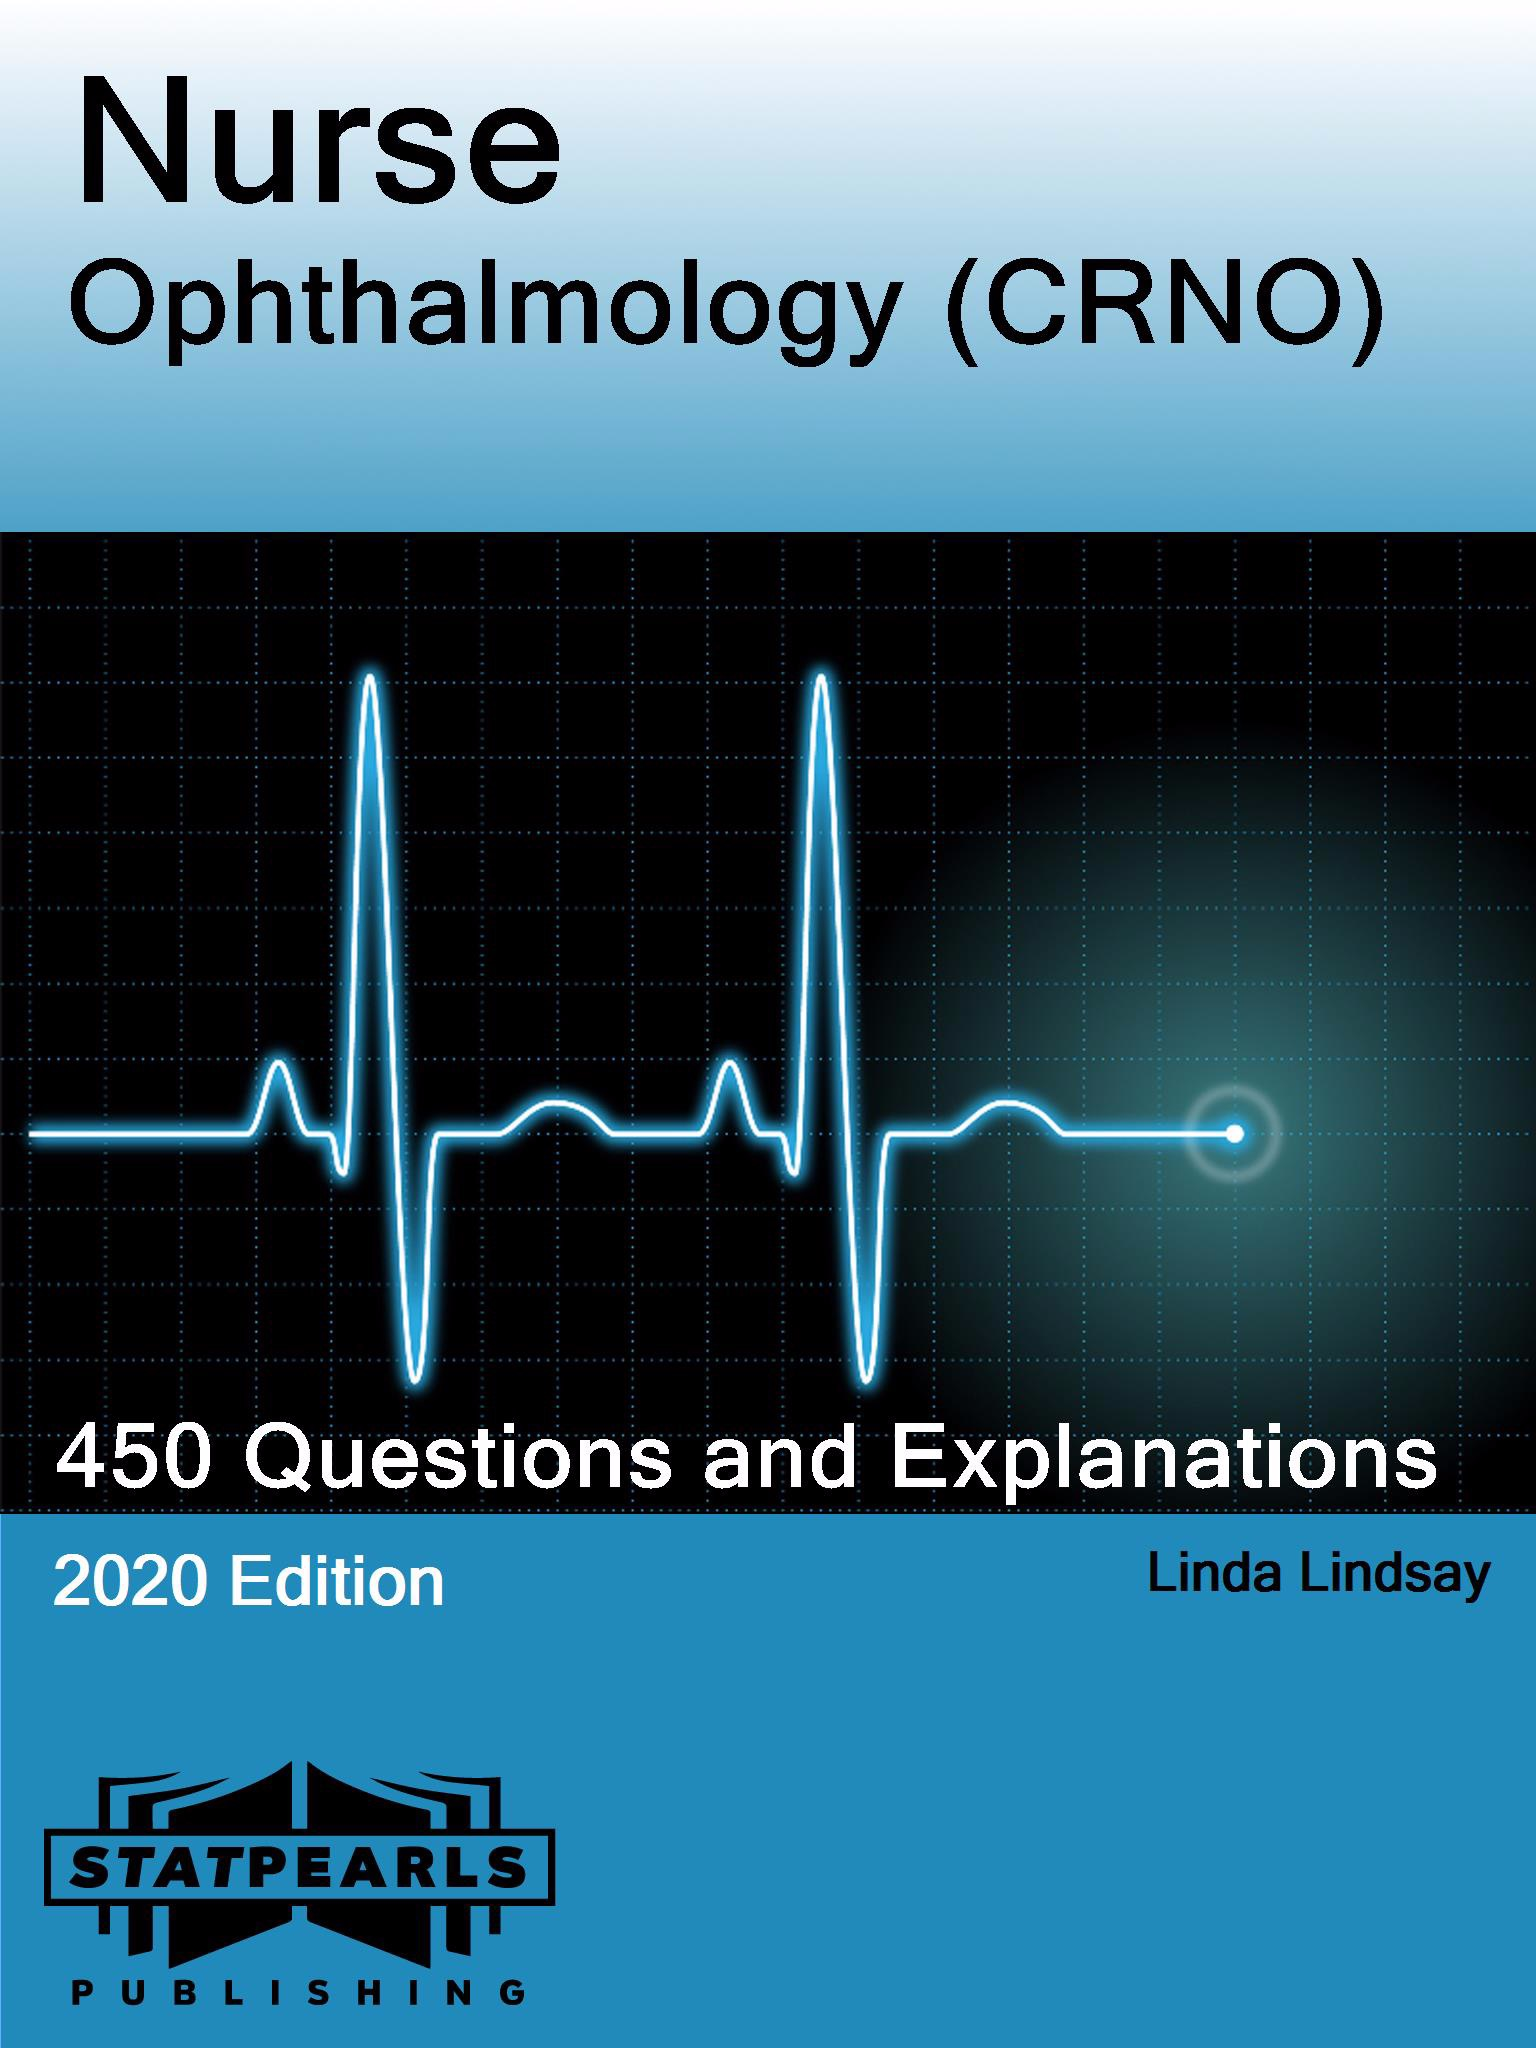 Nurse Ophthalmology (CRNO)